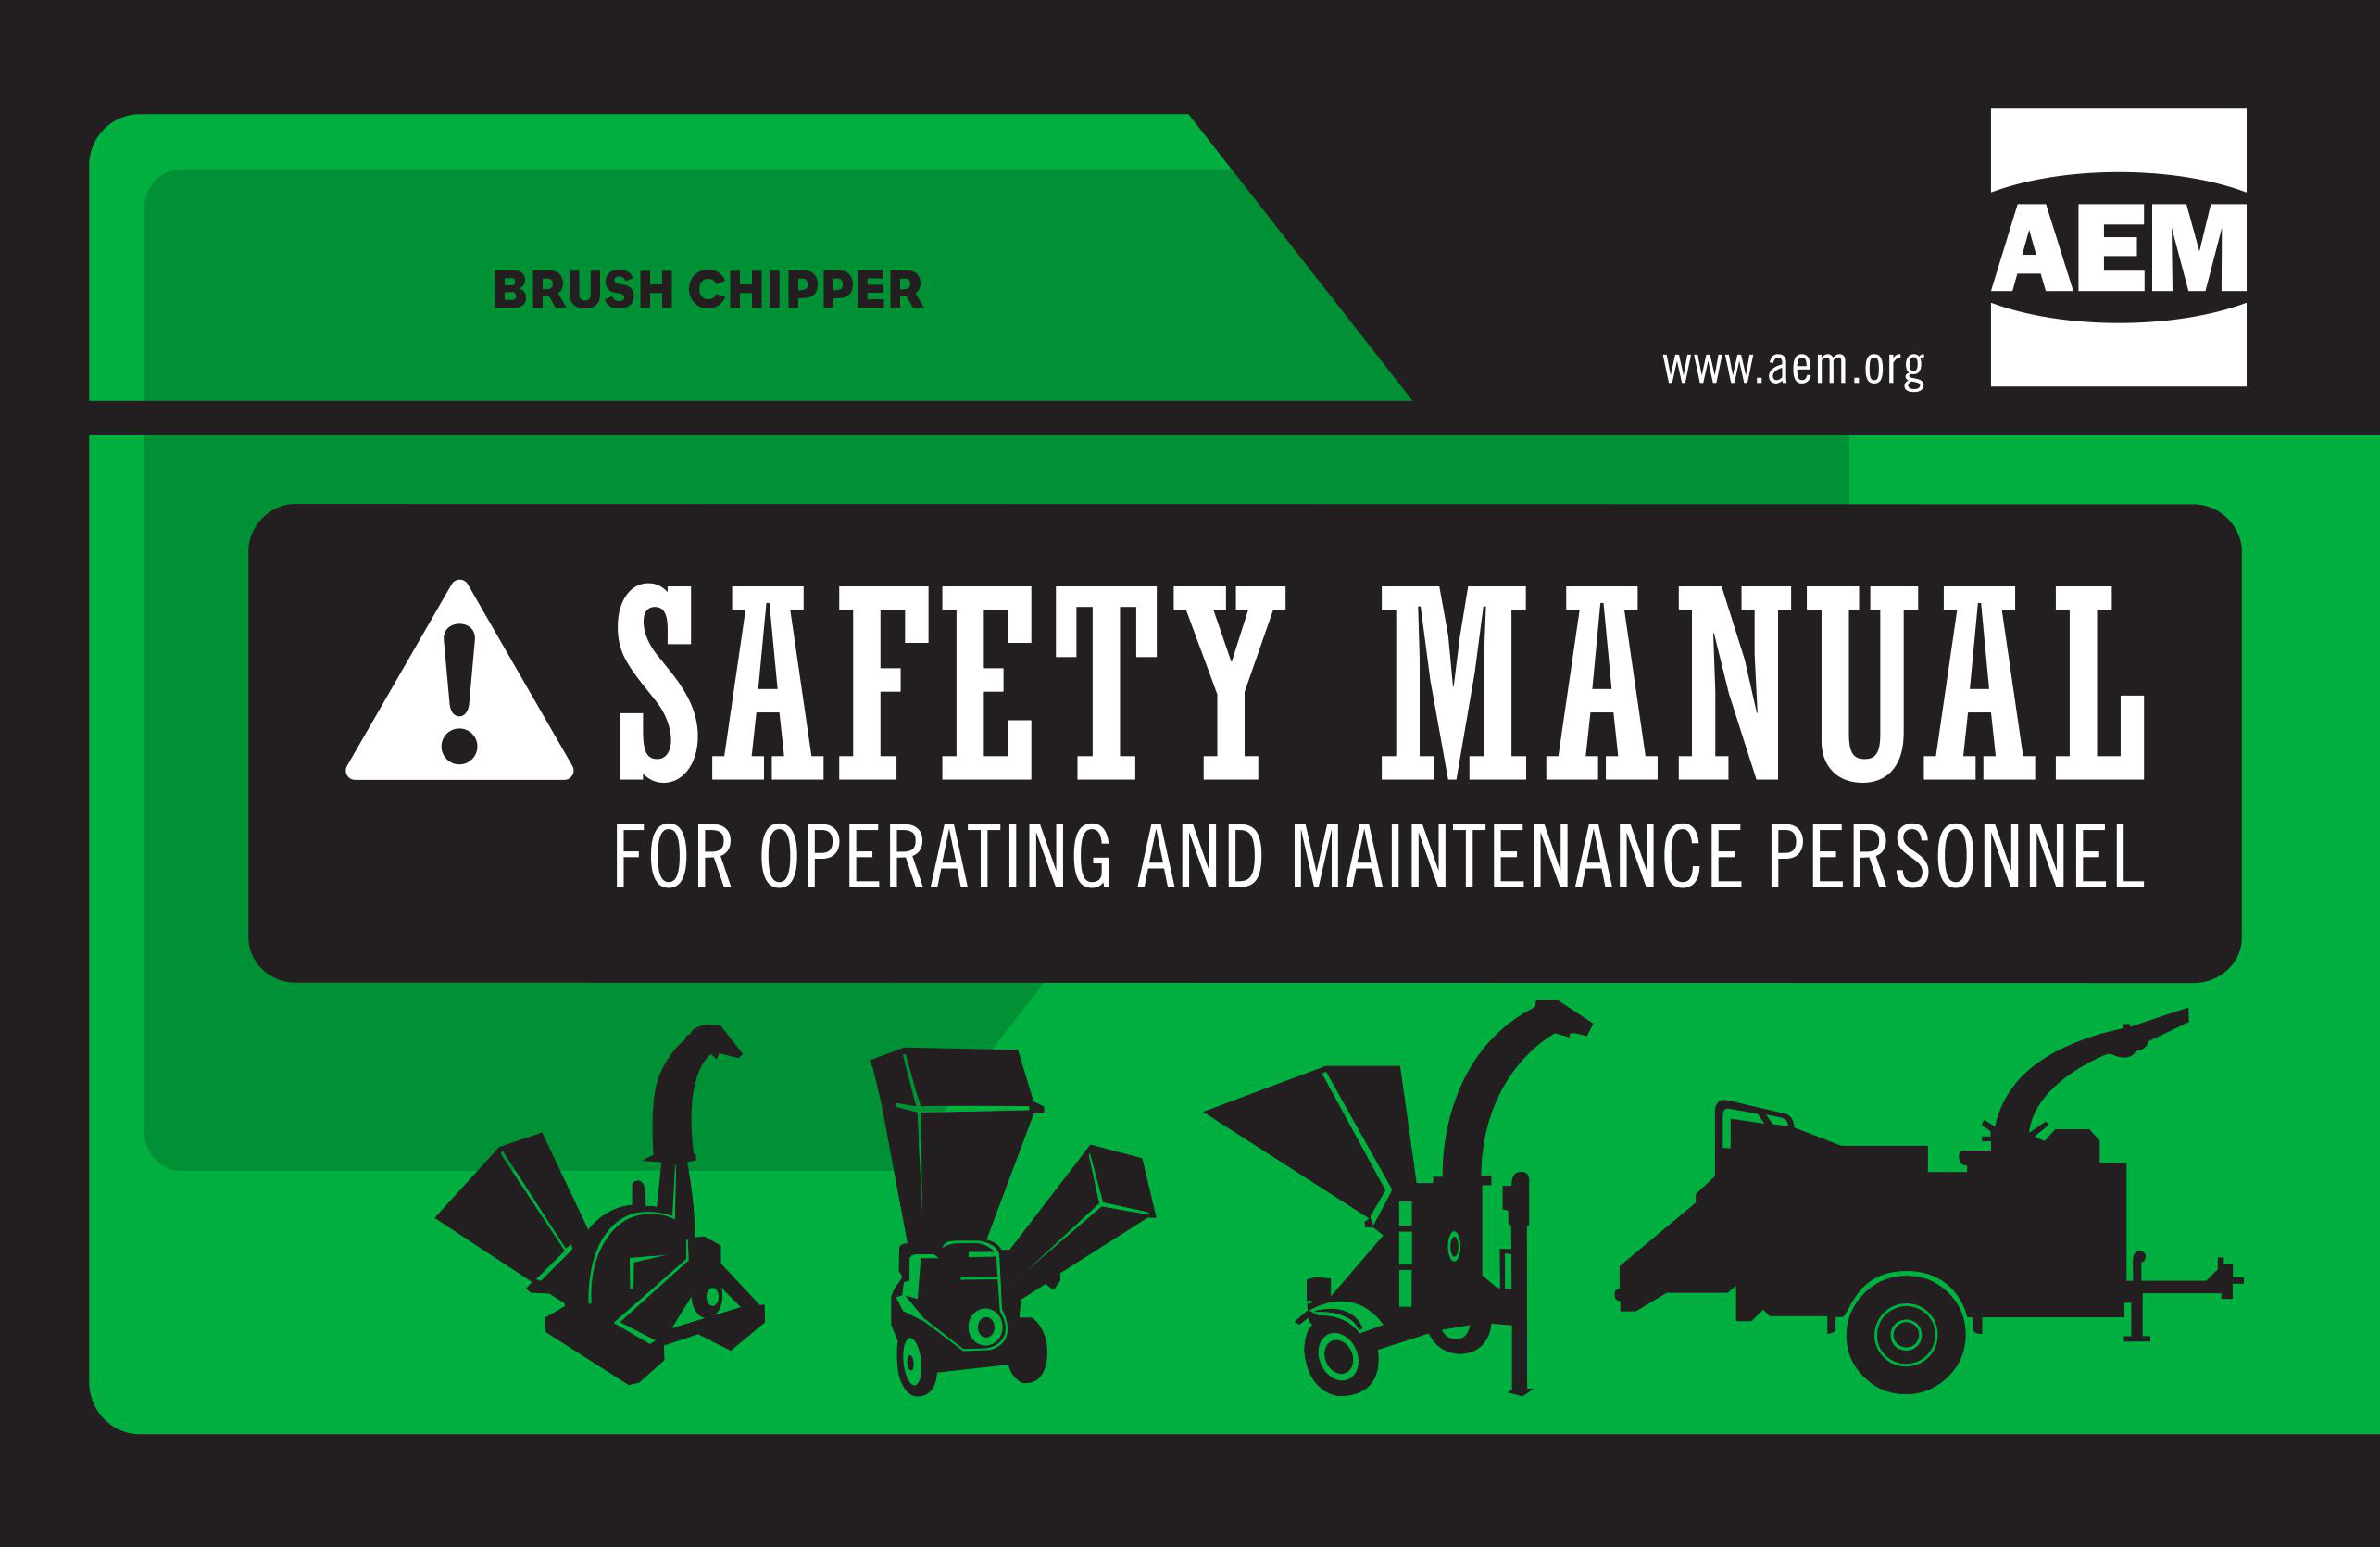 Brush Chipper Safety Manual